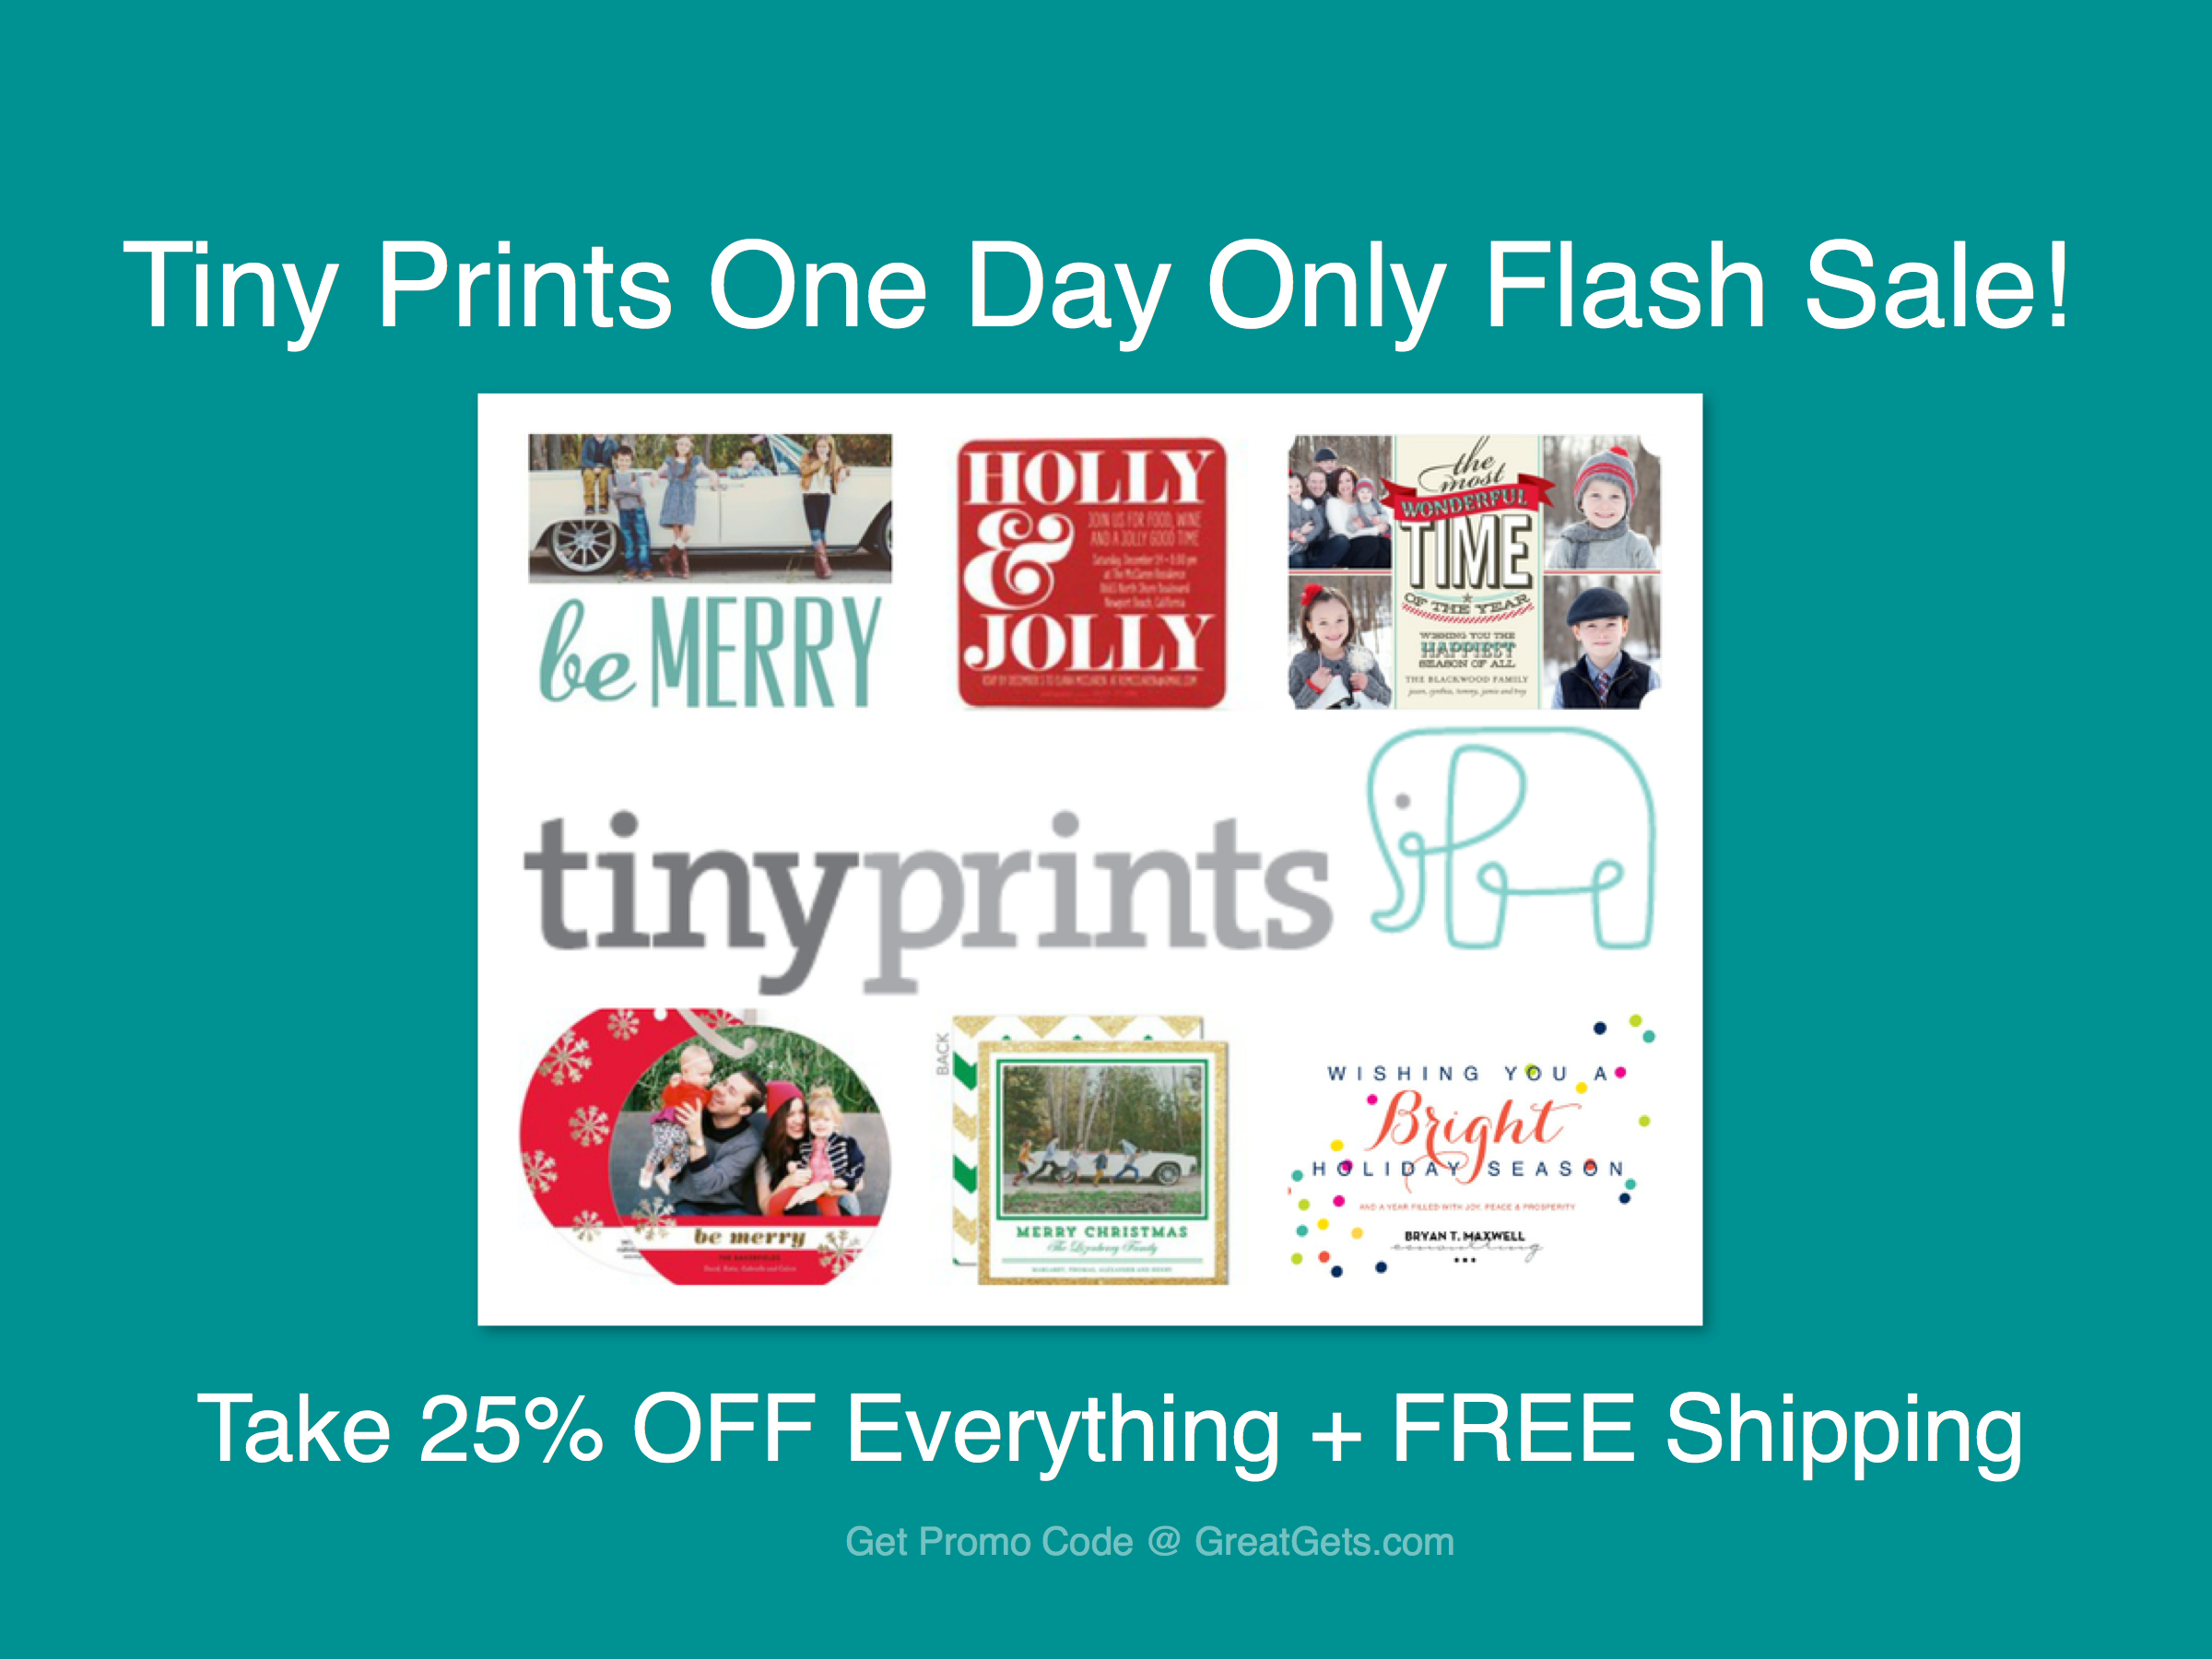 Tiny Prints is the online shopping destination for greetings, stylish invites and home décor. You can personalize invitations and greeting cards by adding custom messages, a family photo and so on.